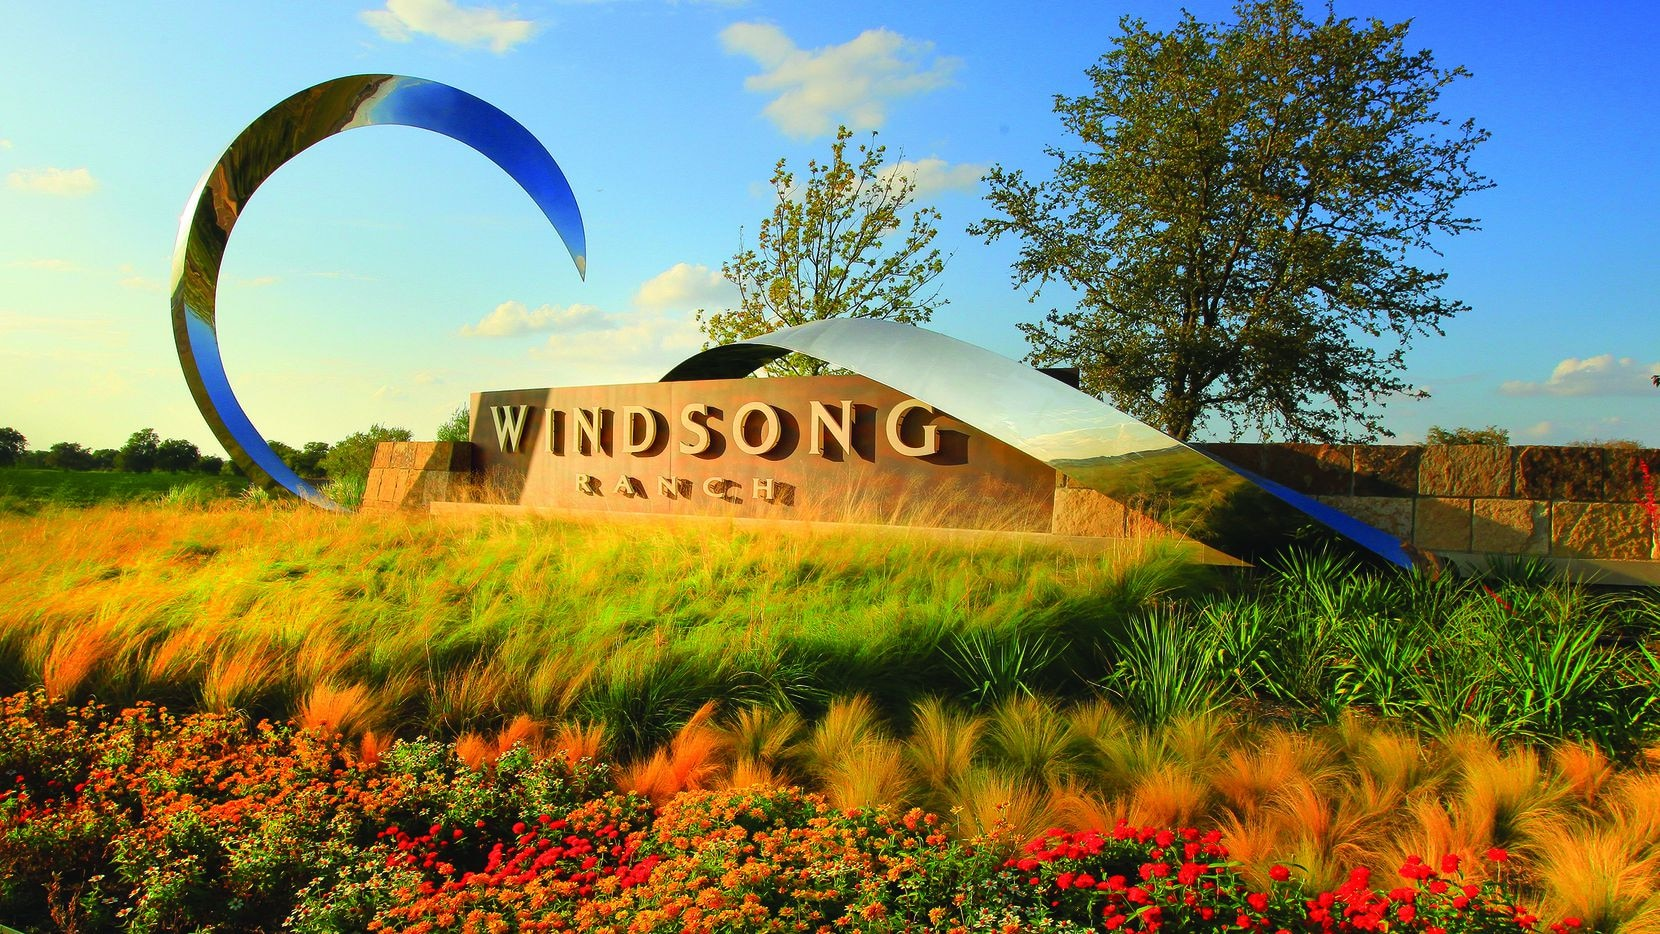 Windsong Ranch in Prosper offers residents an expanding array of amenities, including a 5-acre freshwater lagoon.